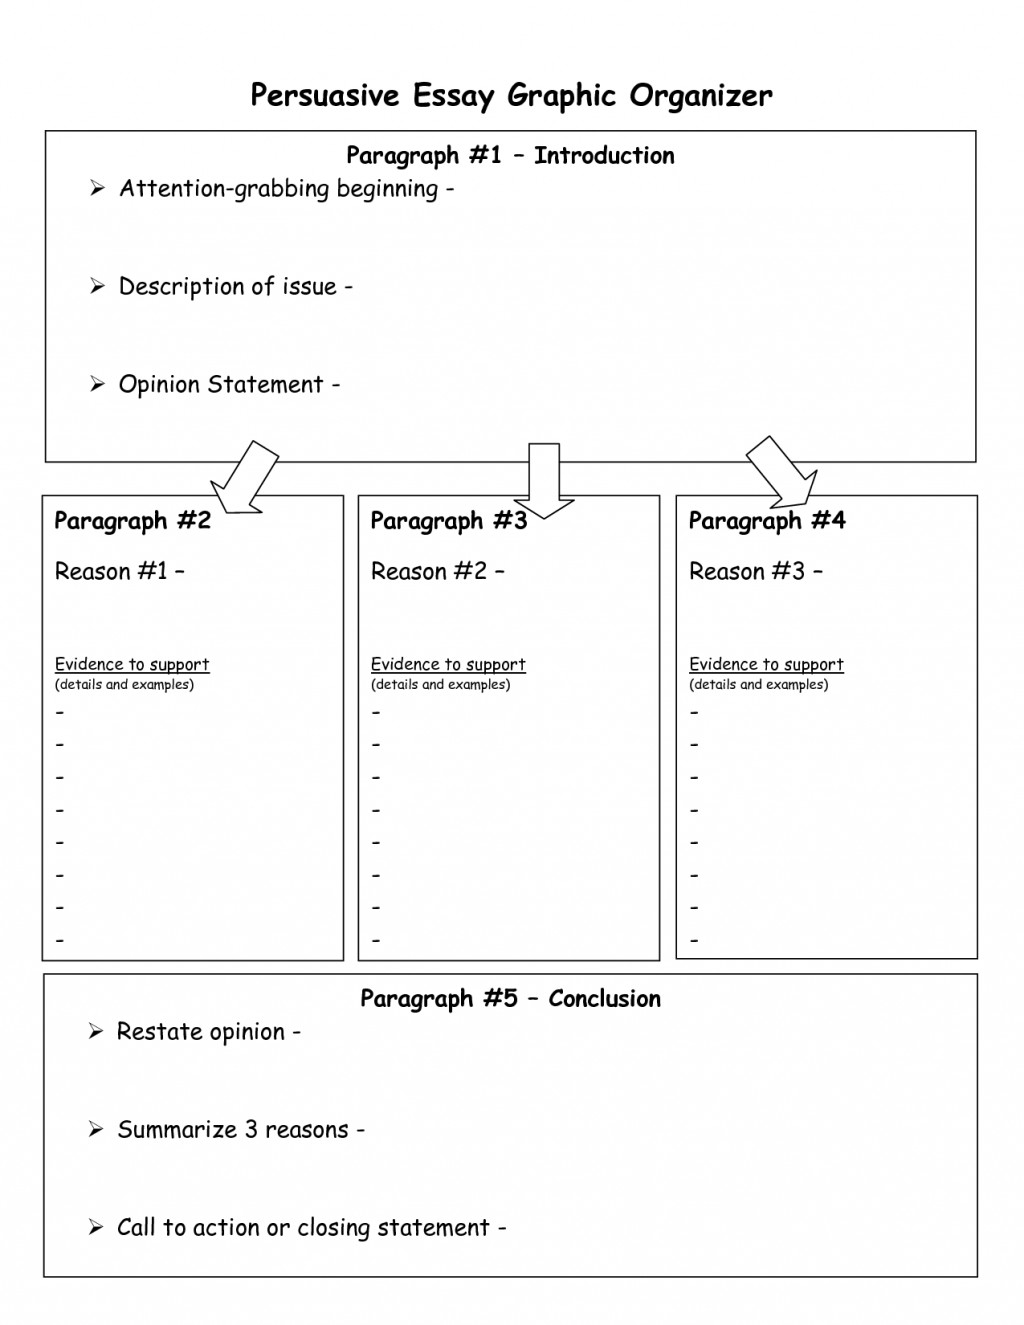 014 Paragraph Essay Graphic Organizer Examples Middle School Writing Organizers Argumentative Pdf Example Sensational 5 Five High Organizer-hamburger Large